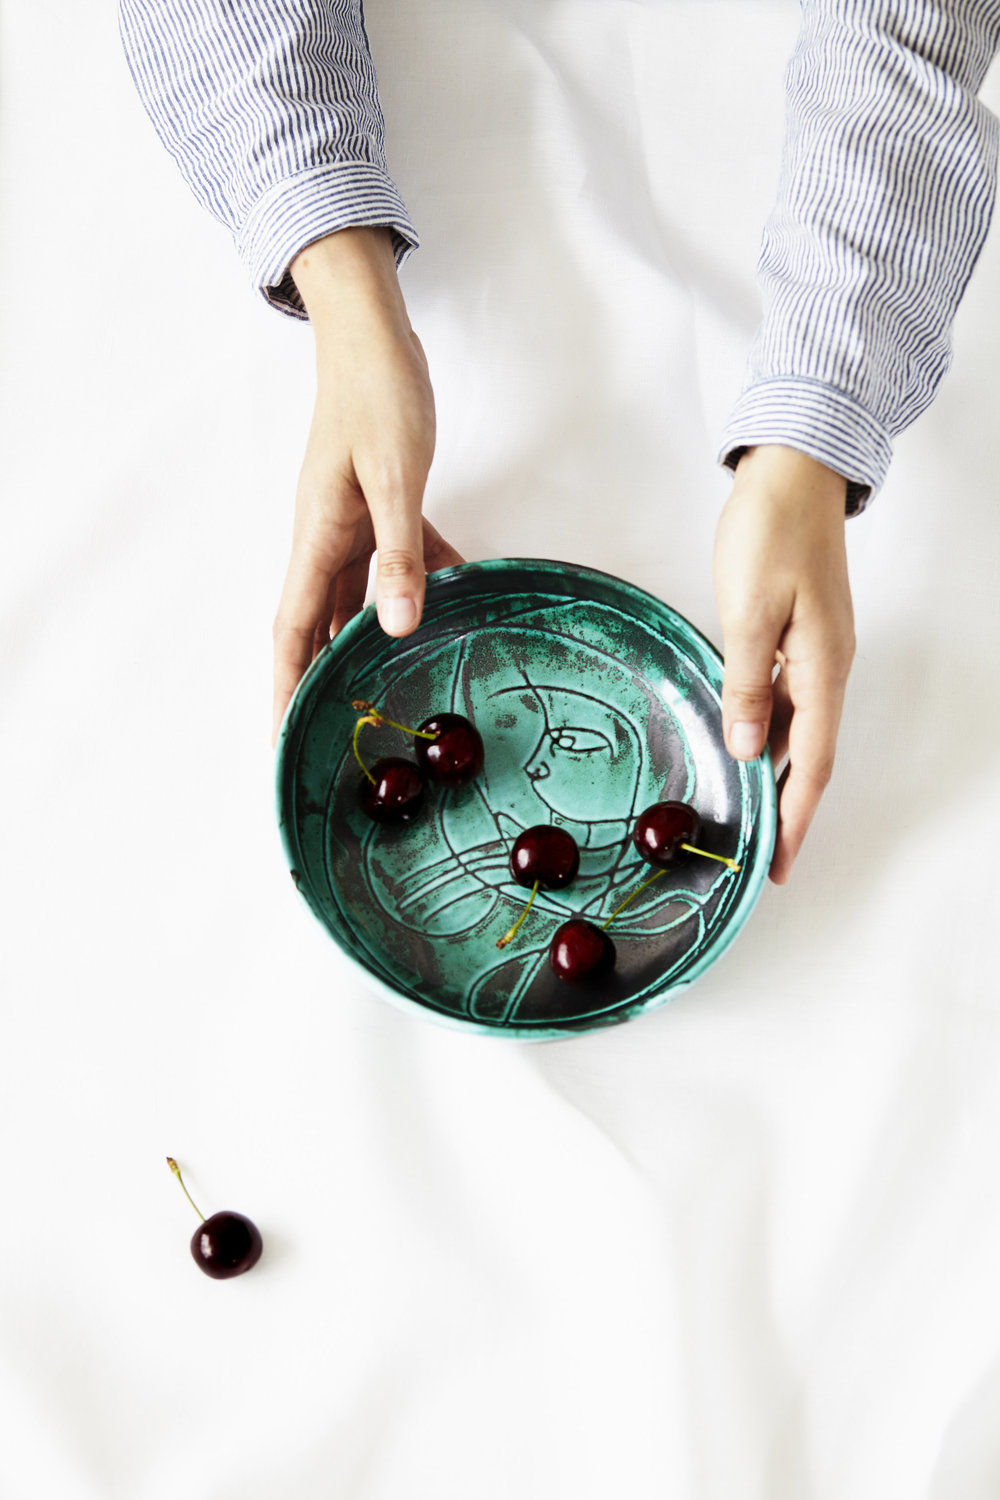 Medium+Italian+Ceramic+Bowl+Turquoise_Styling.jpg